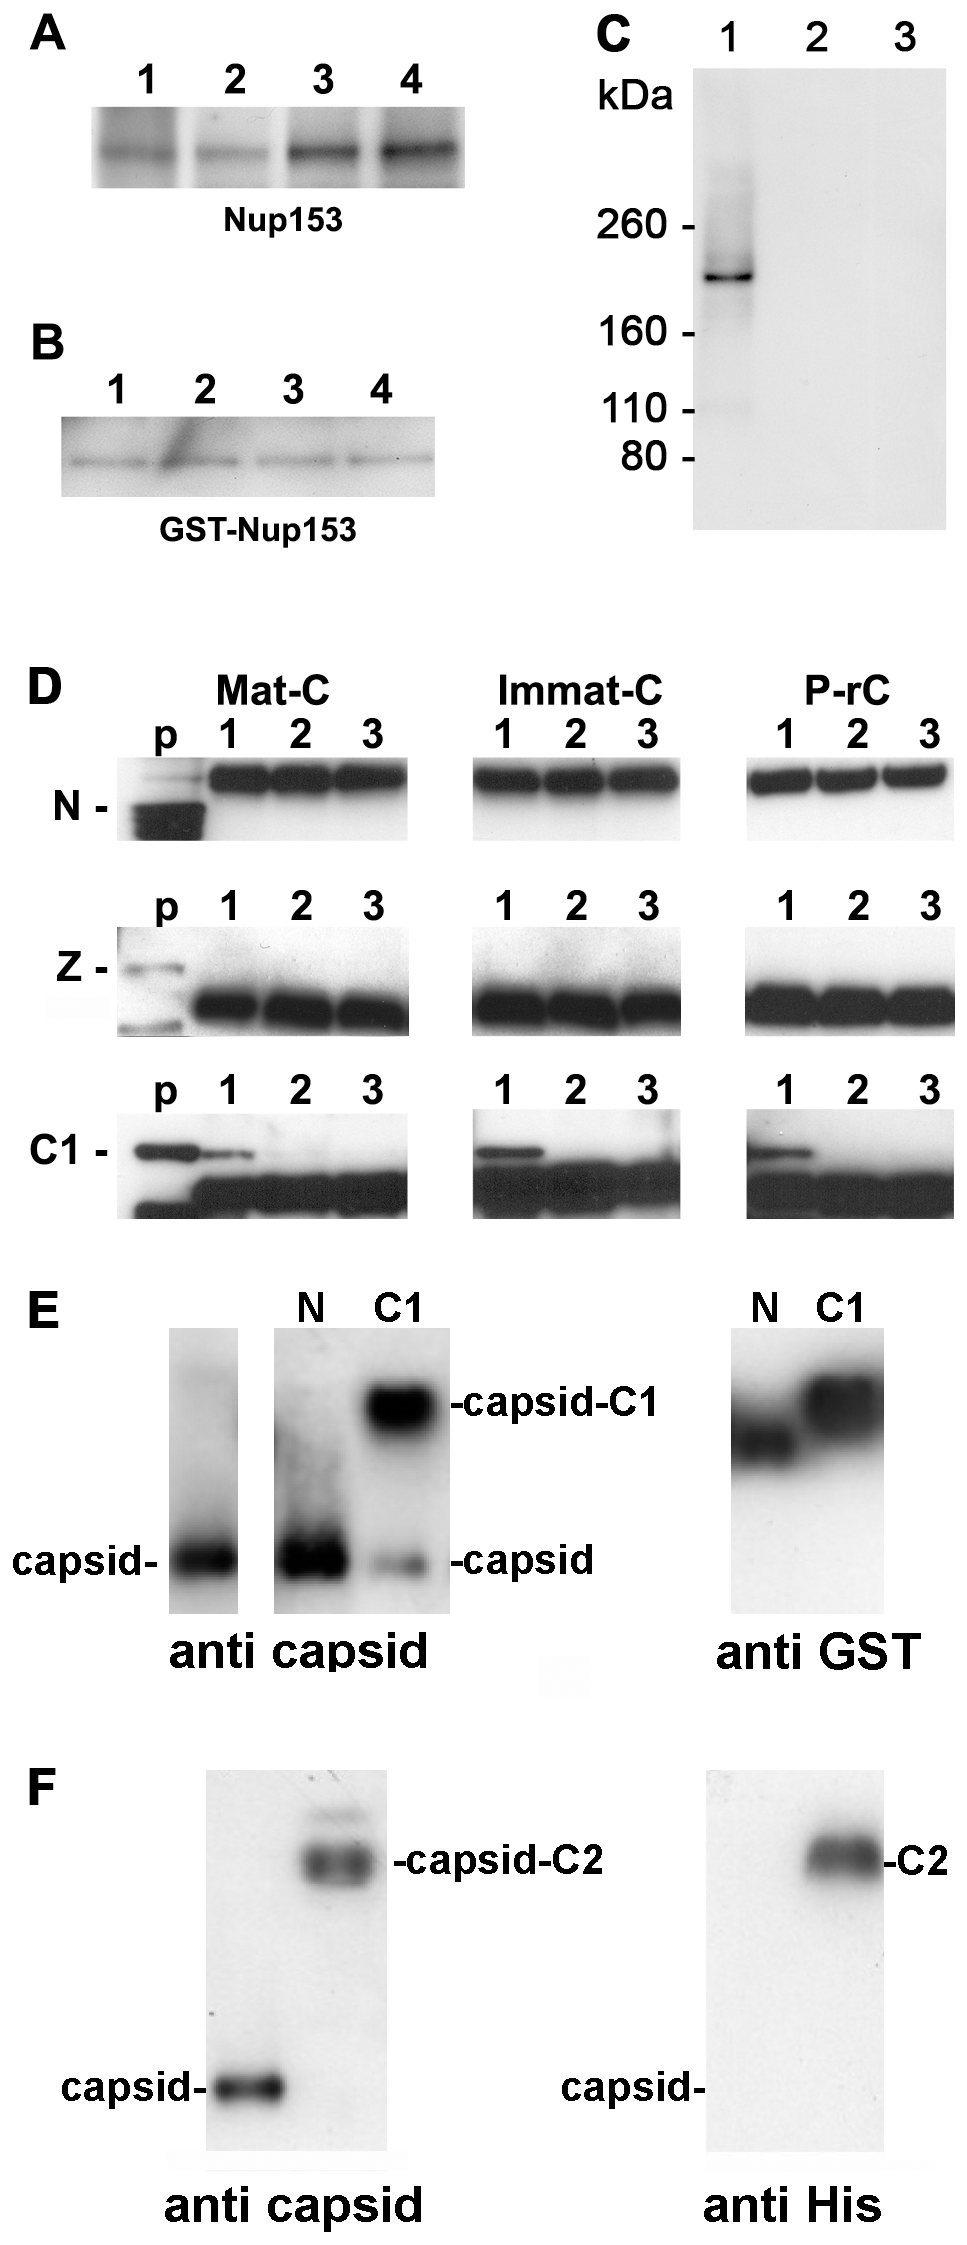 Co-immune precipitations of human Nup153 and Nup153 fragments with different capsids.